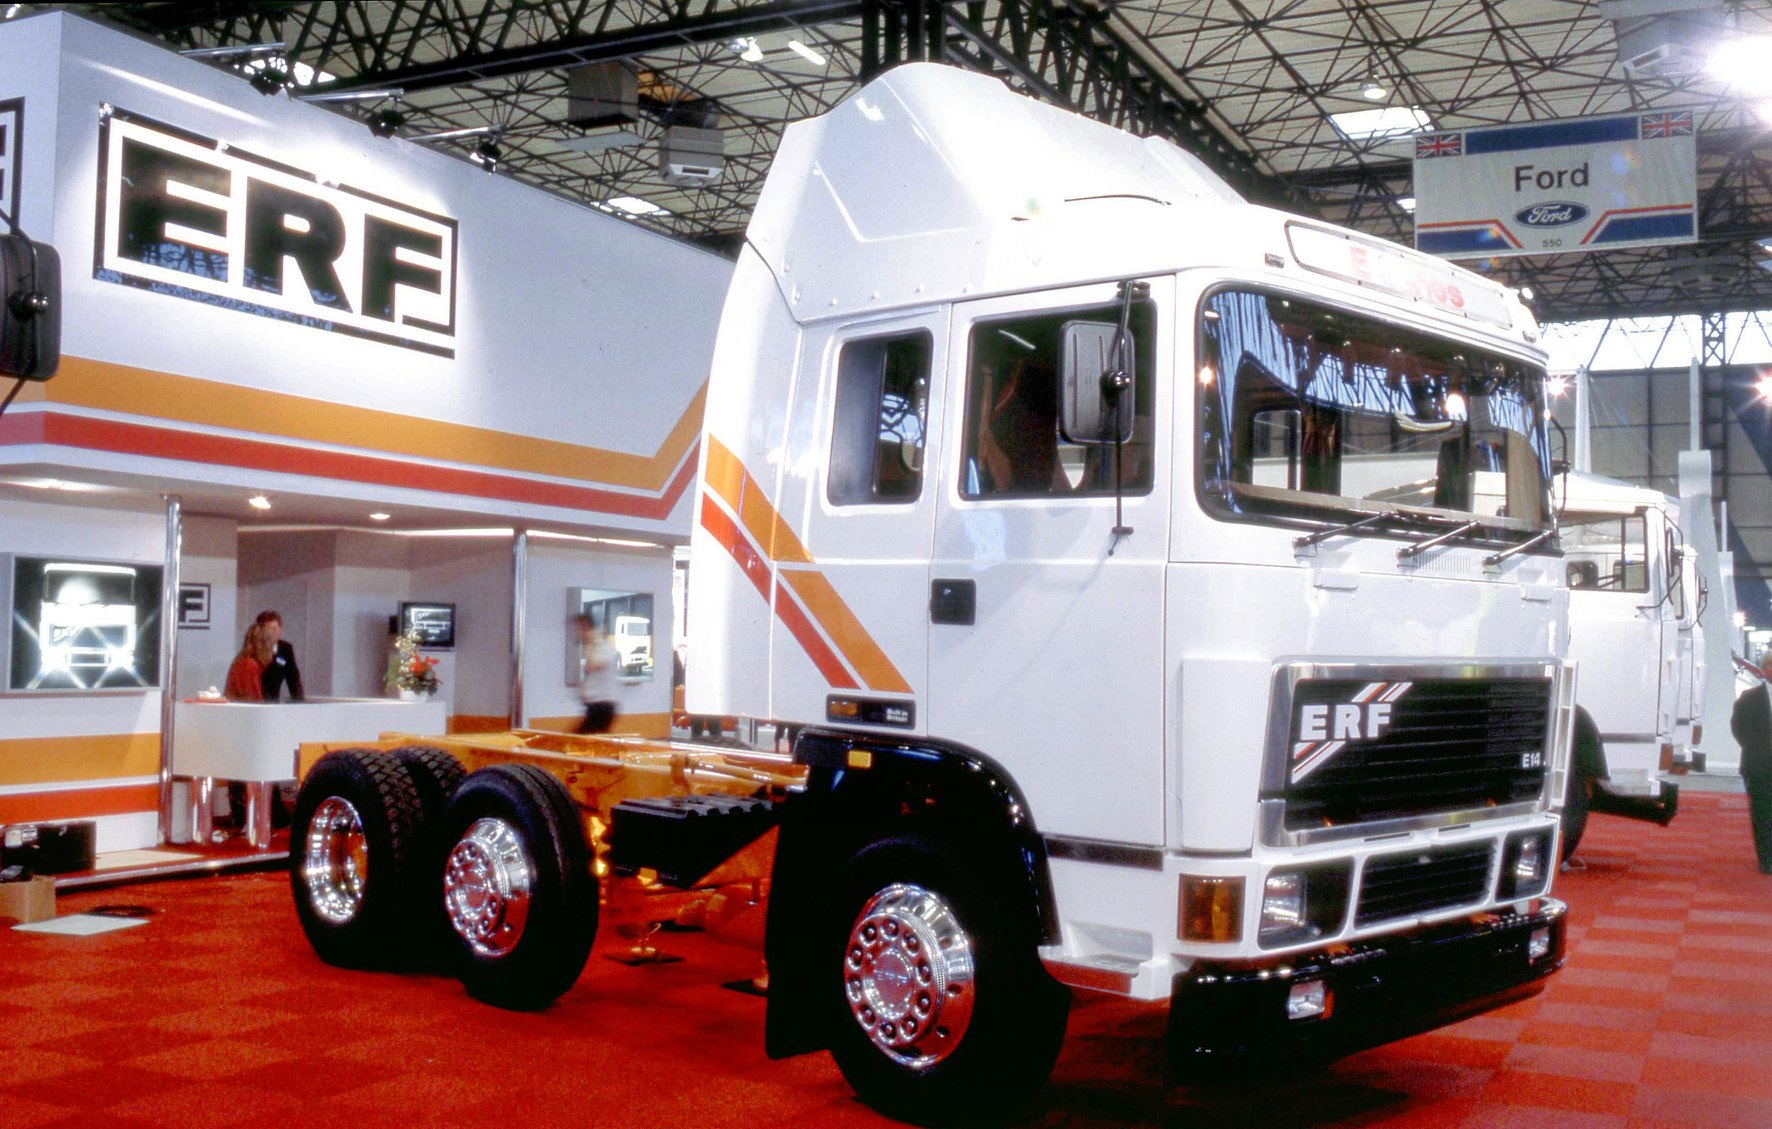 ERF-E-Series-at-the-Commercial-Vehicle-Show-in-Birmingham--1986